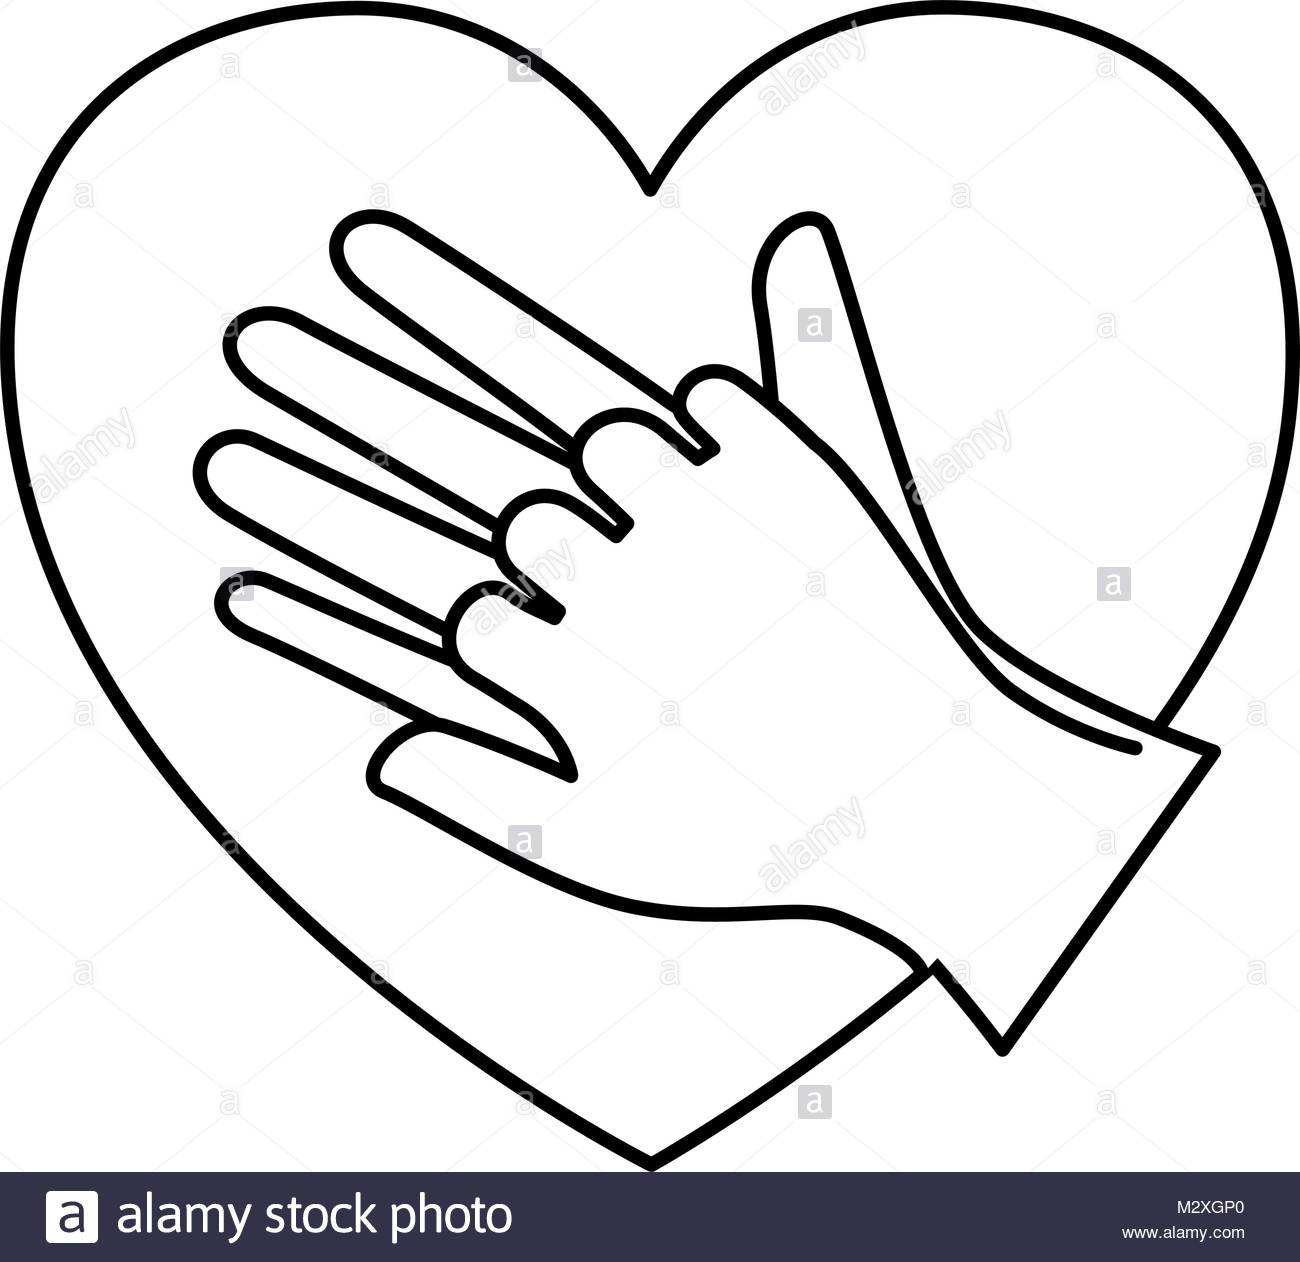 1300x1262 Heart With Hands Icon Stock Vector Art Amp Illustration, Vector